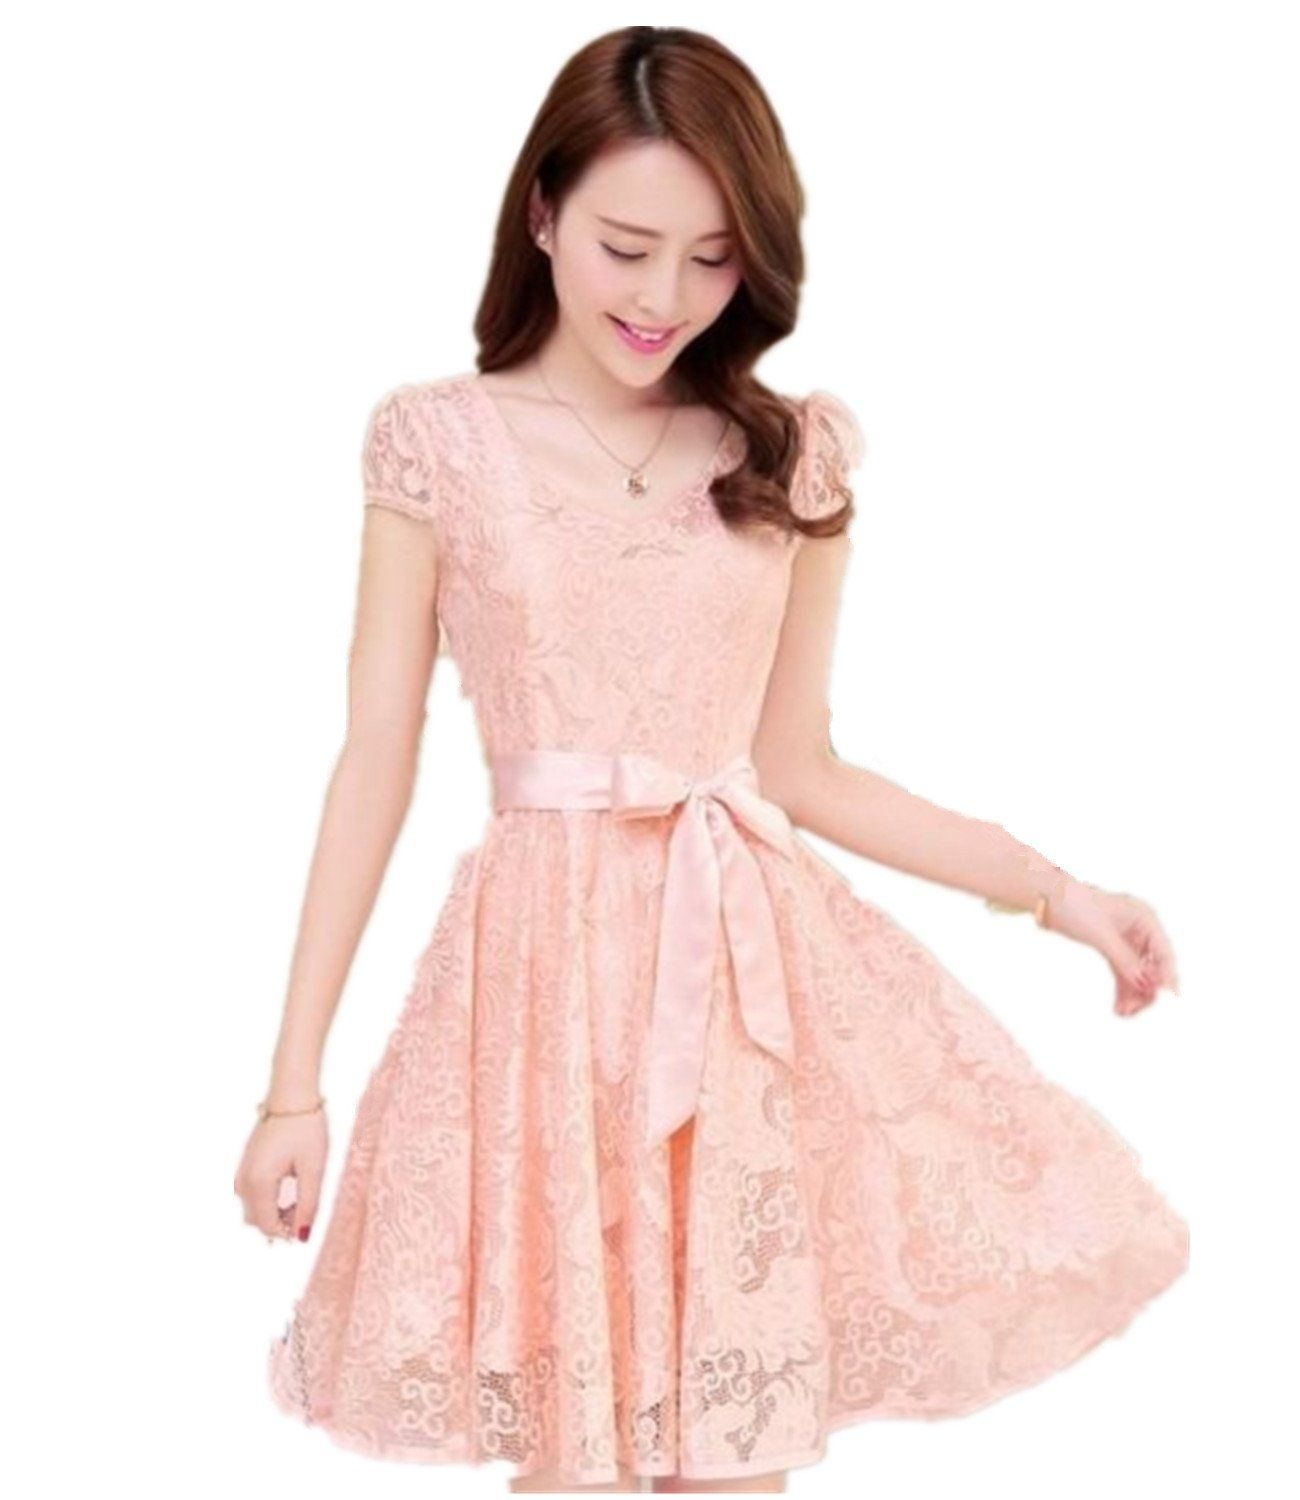 Summer womens slim chiffon lace party evening cocktail casual dress summer womens slim chiffon lace party evening cocktail casual dress at amazon womens clothing store ombrellifo Image collections